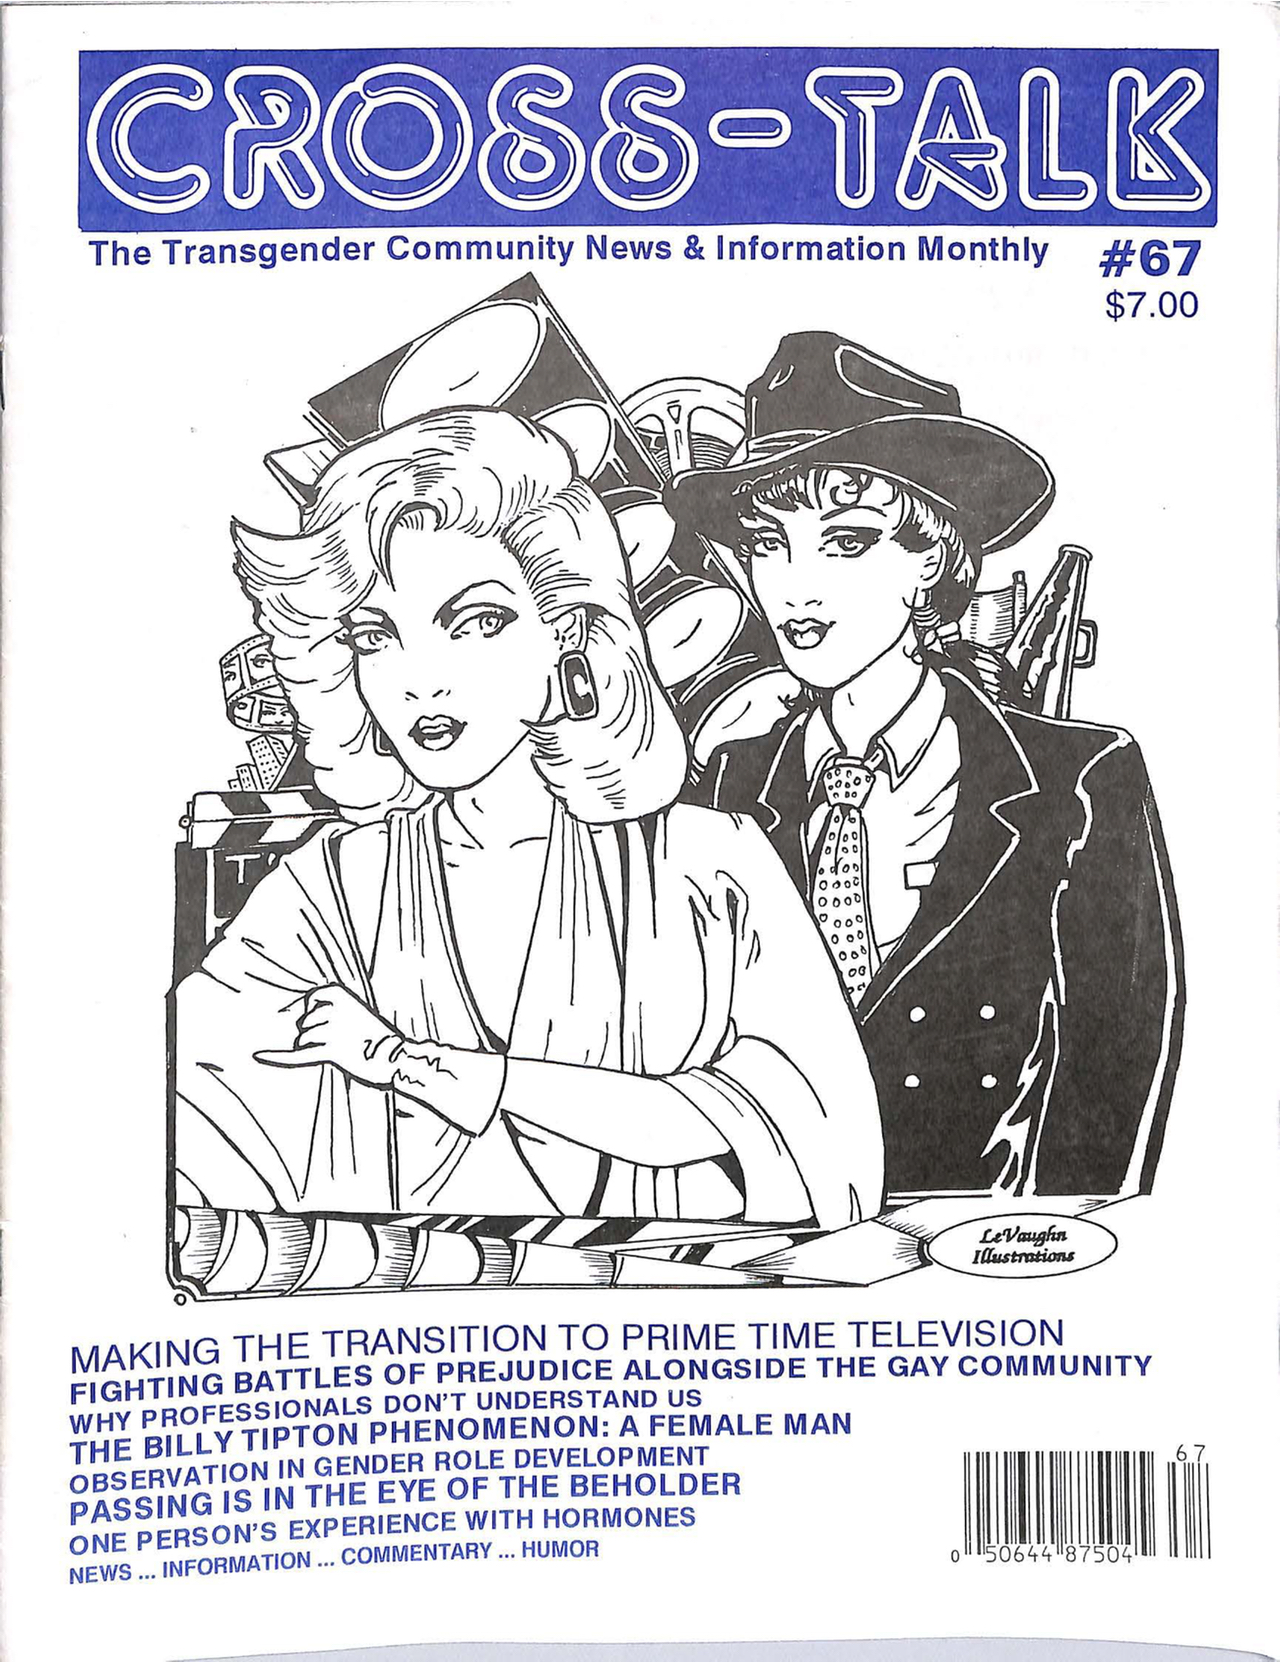 Cover of May 1995 issue of Cross-Talk (courtesy Lili Elbe Archive and Digital Transgender Archive)